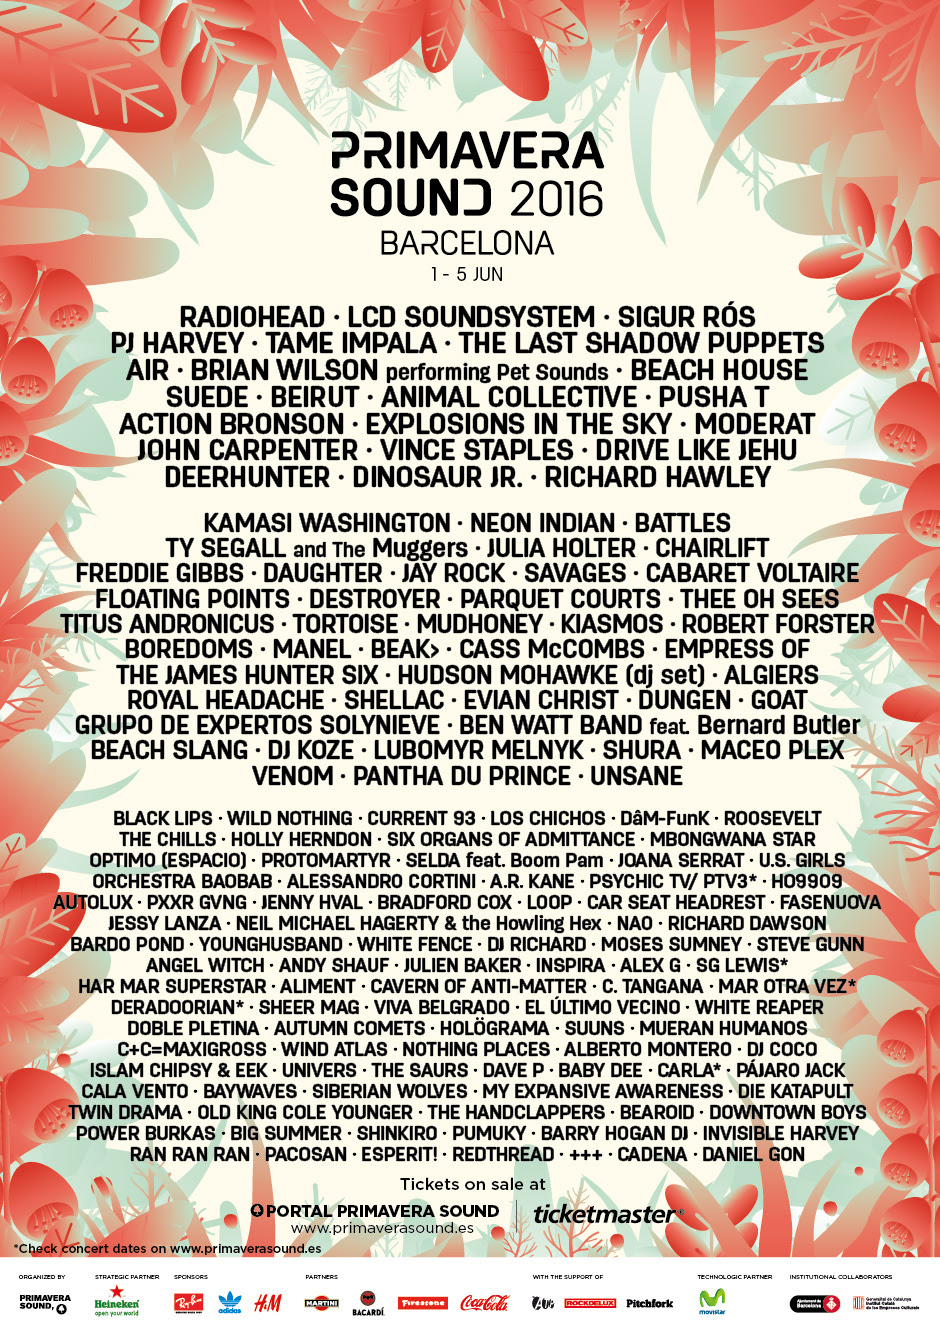 NEWS: Primavera Sound 2016 line-up revealed